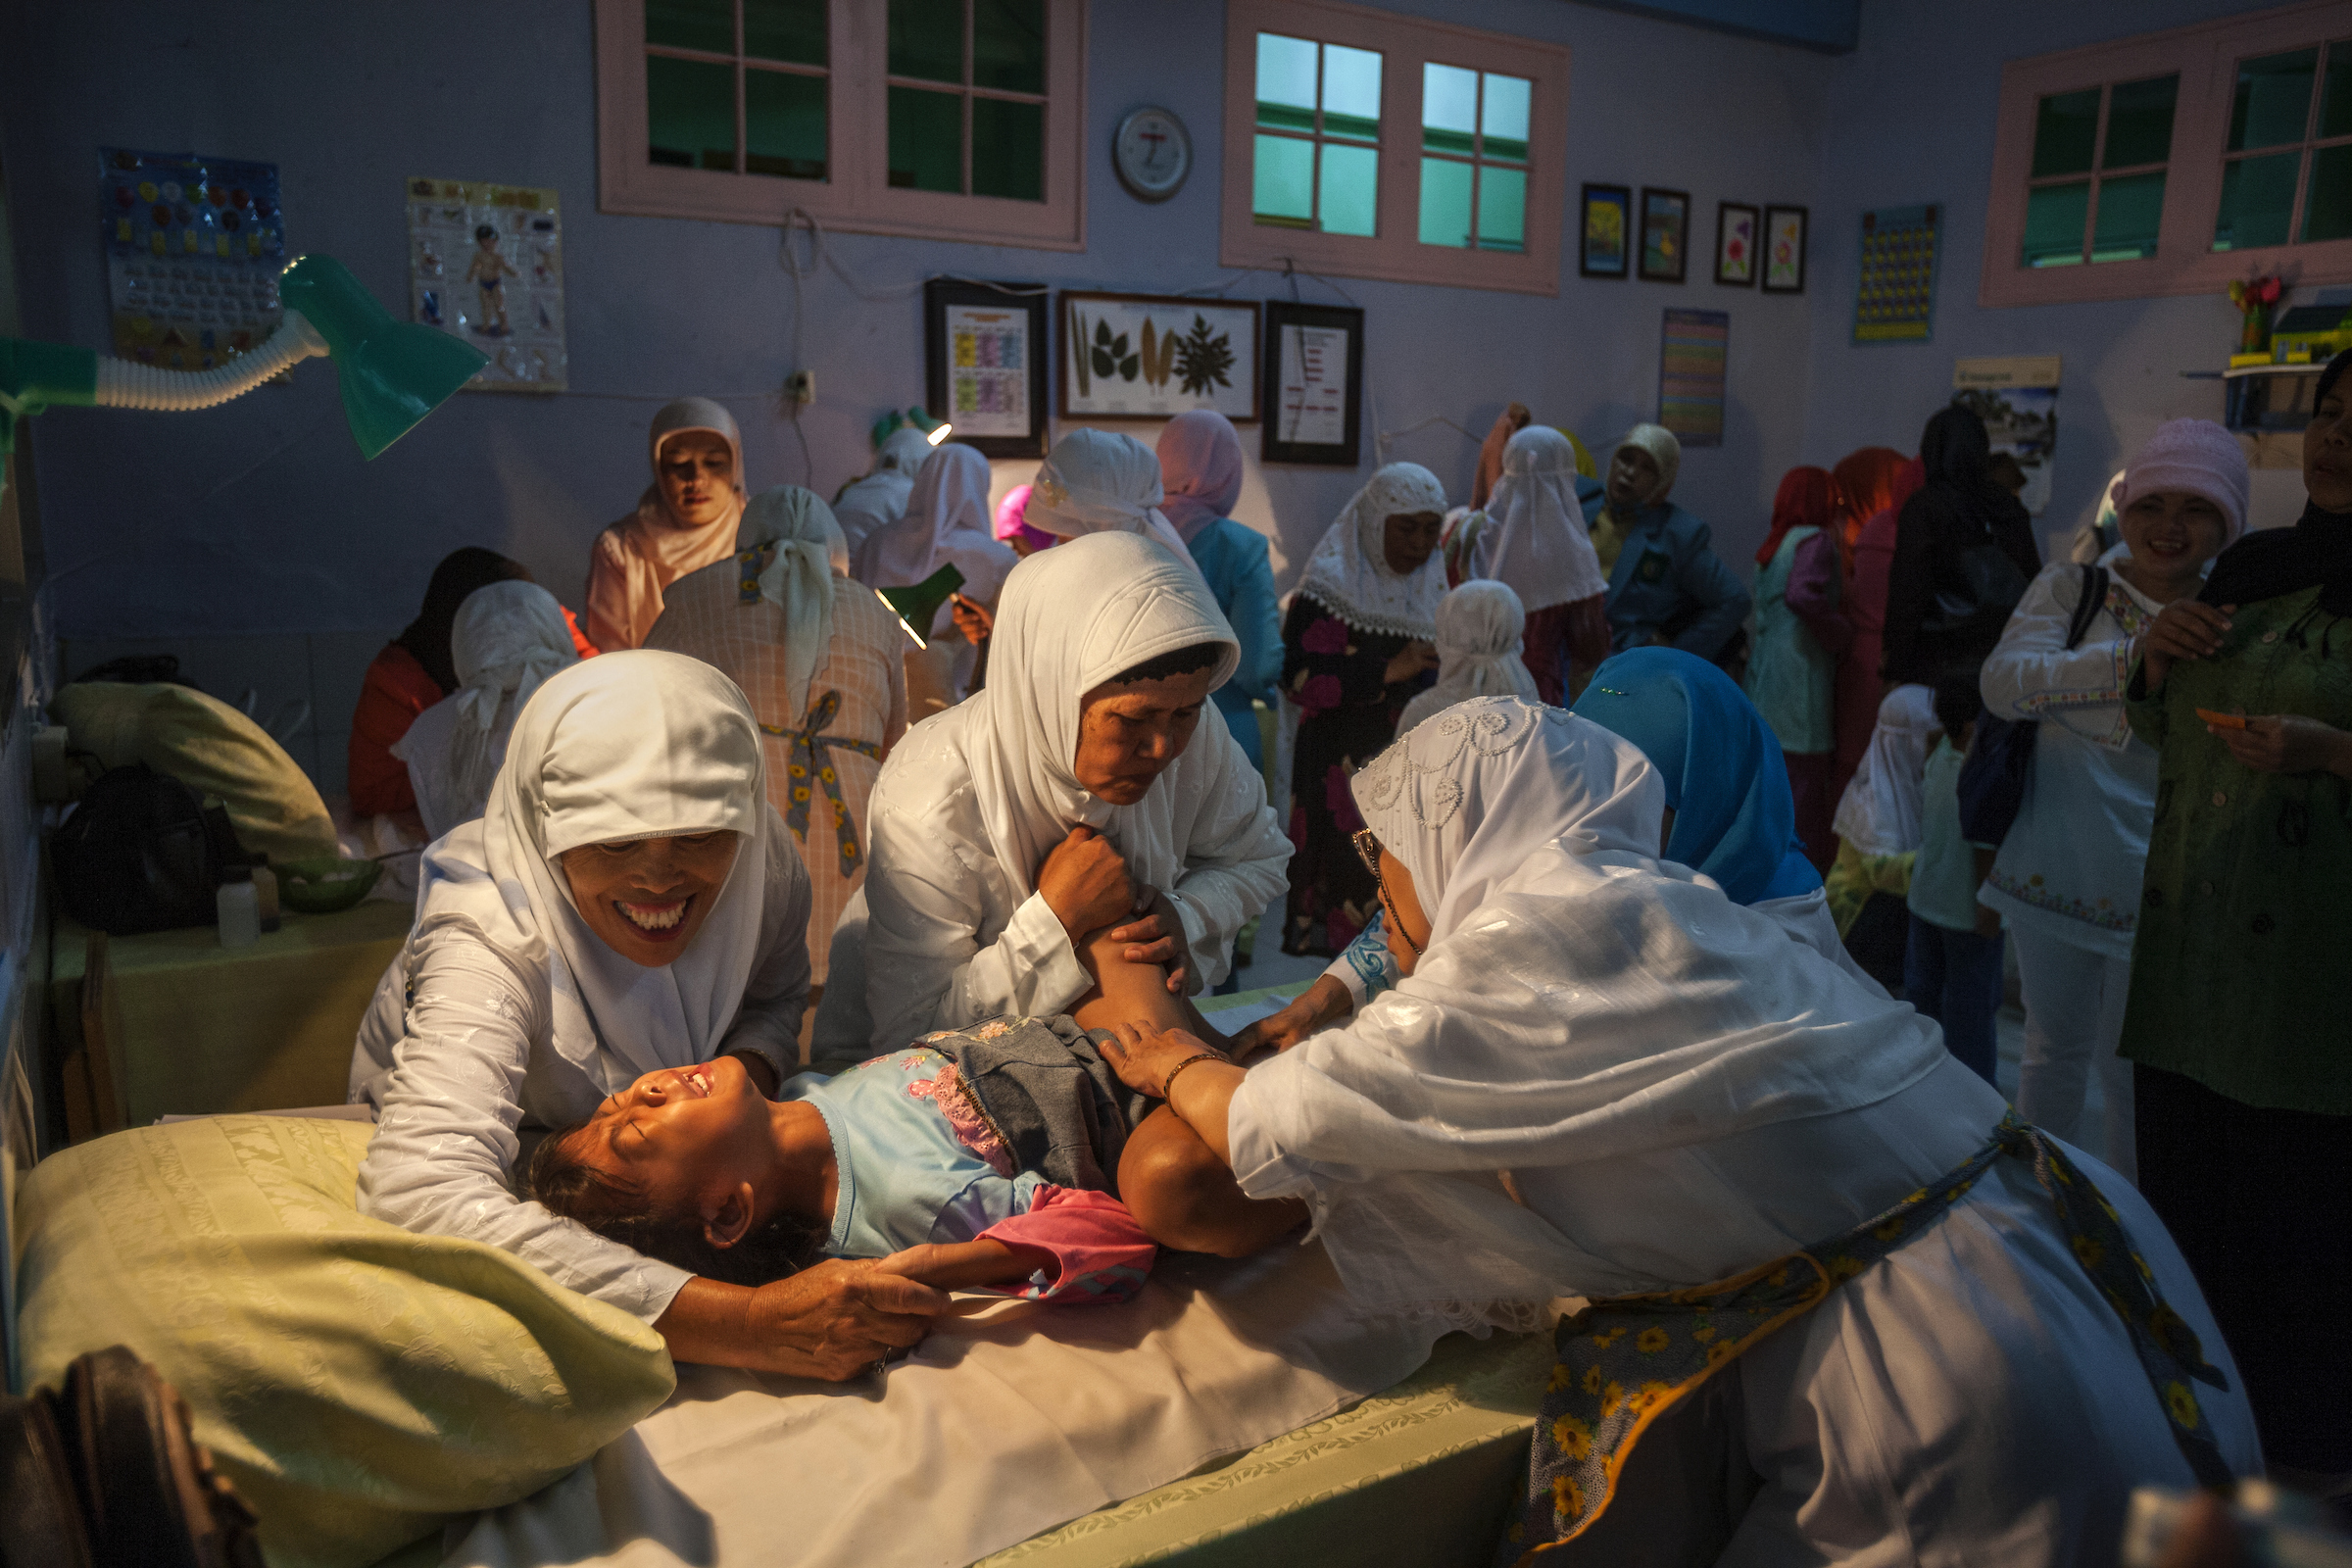 A young girl screams while being circumcised in Bandung, Indonesia.